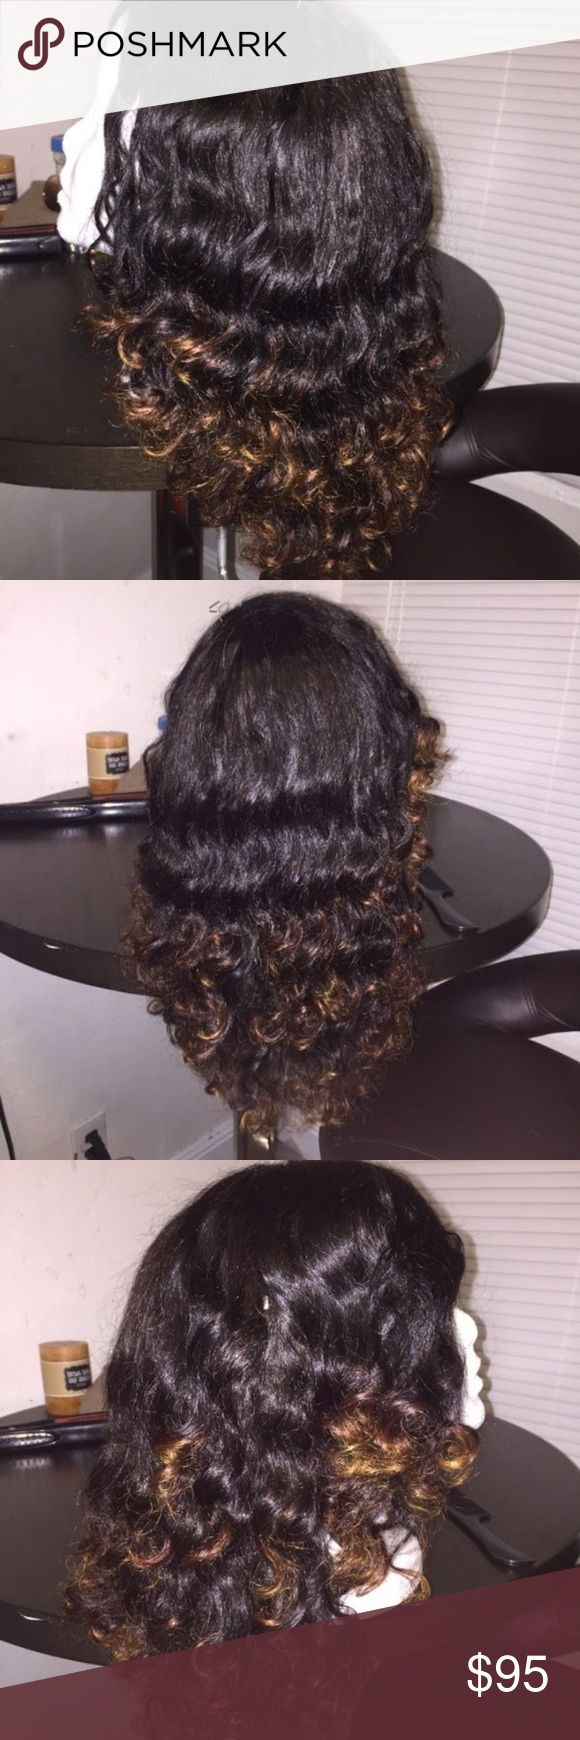 100% Human Brazilian Curly U Part Wig Beautiful Custom wig, Natural 1b color with brown ombre ends, 18in from part to ends layered, Soft natural looking curls, can dye, straighten, Was invisible part closure but I cut out to make a U Part for more natural look, pet free smoke free home , I ship same day Accessories Hair Accessories